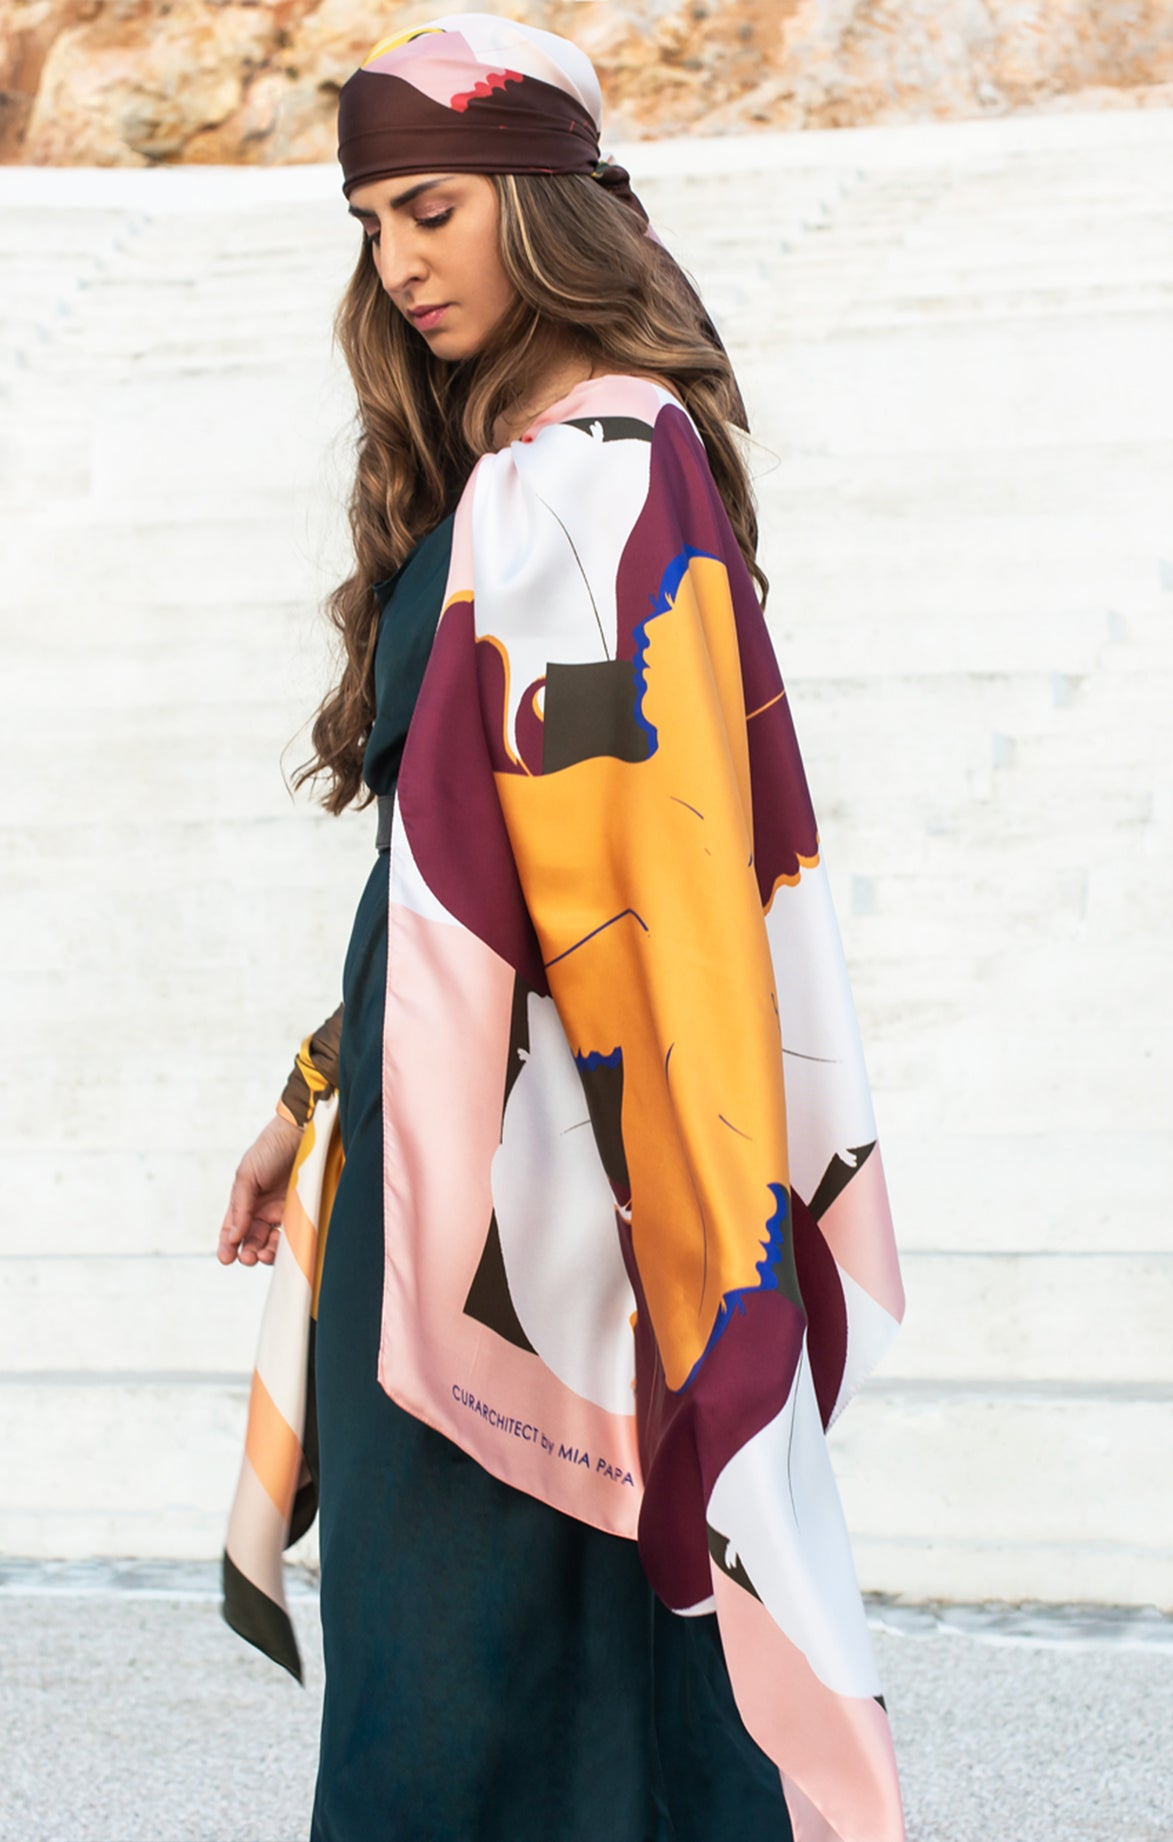 Isabelle Square Silk Scarf